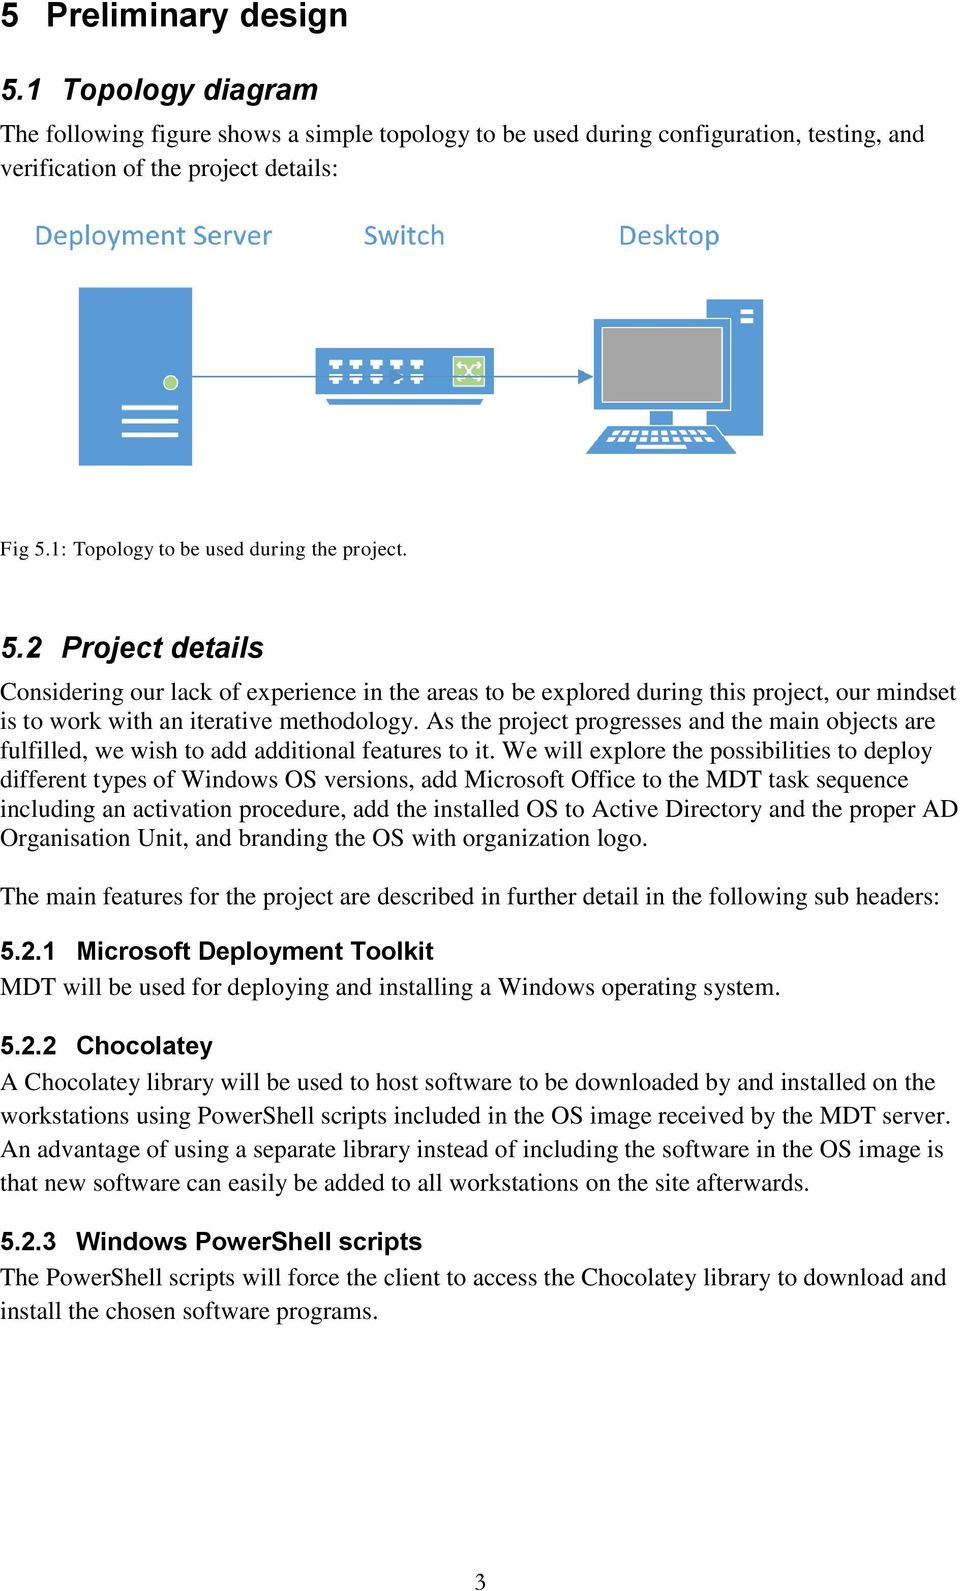 Project Proposal PDT401: Automatic deployment of operating system